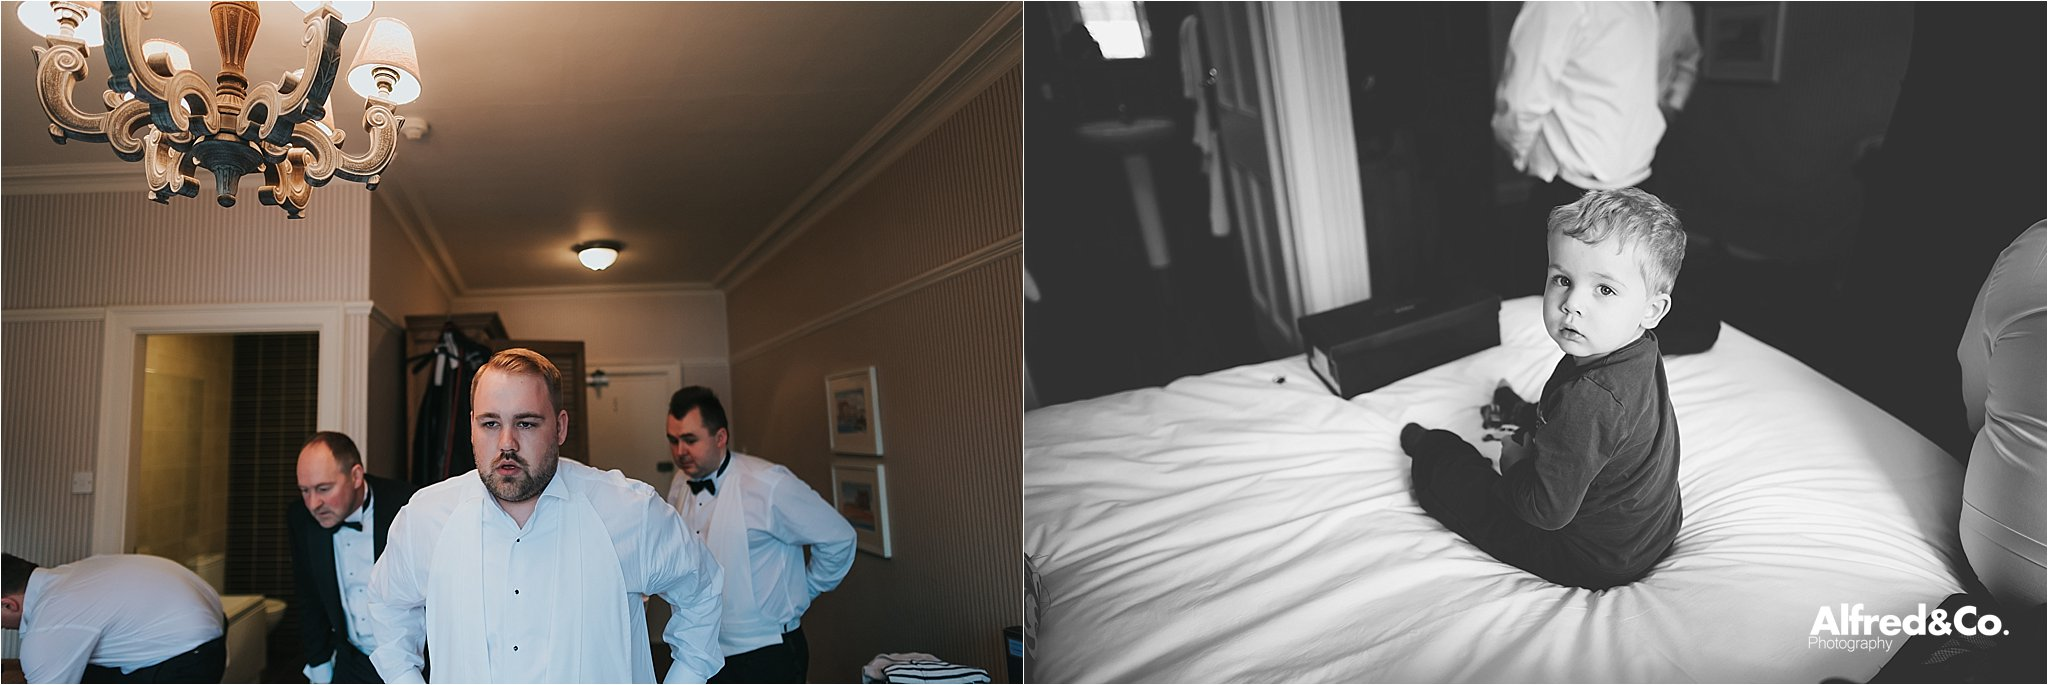 groom getting ready for wedding at eaves hall